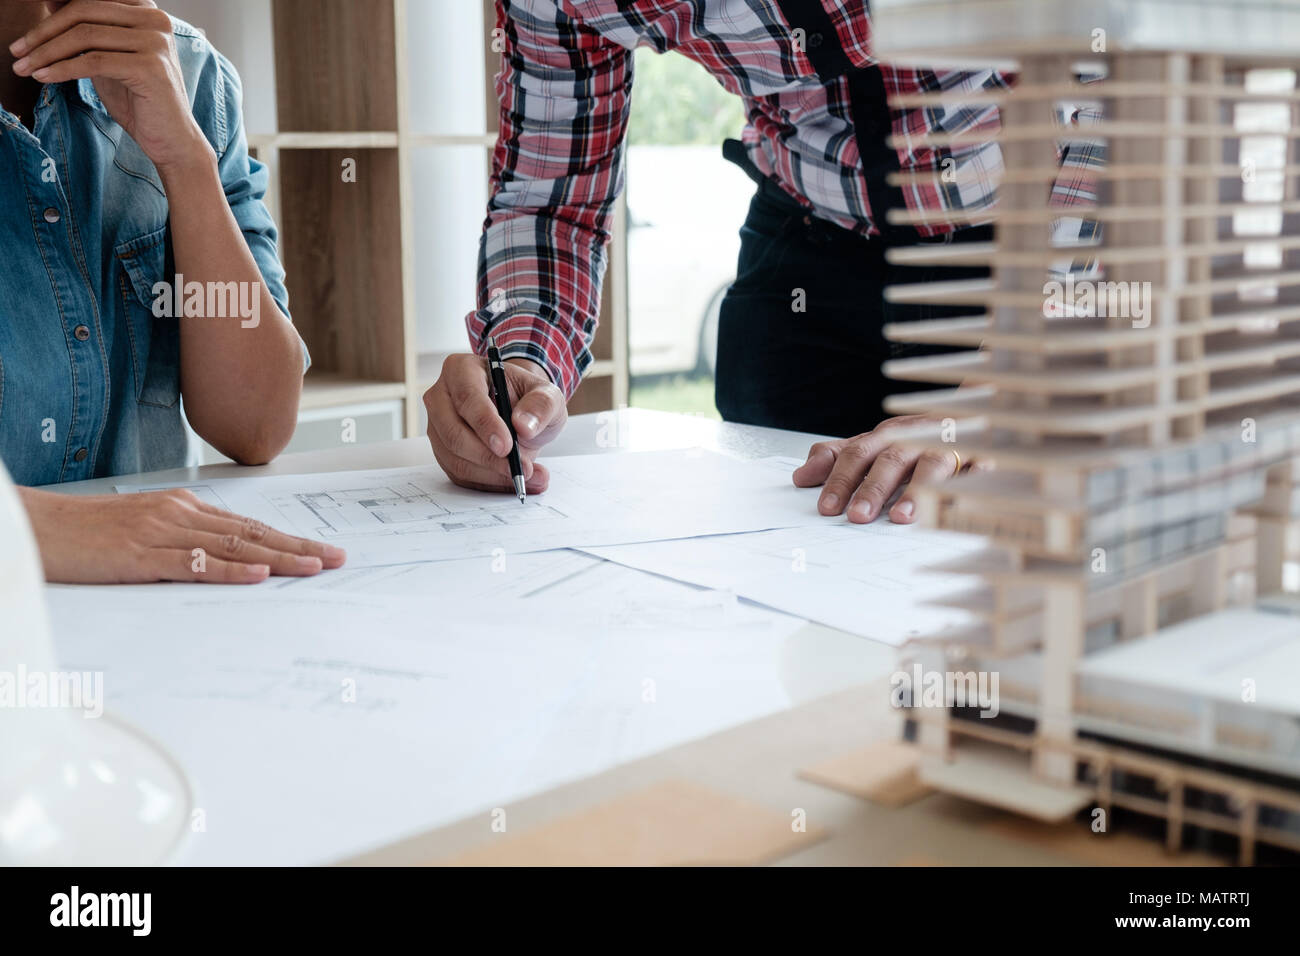 Architect Engineer Design Working on Blueprint Planning Concept. Construction Concept - Stock Image